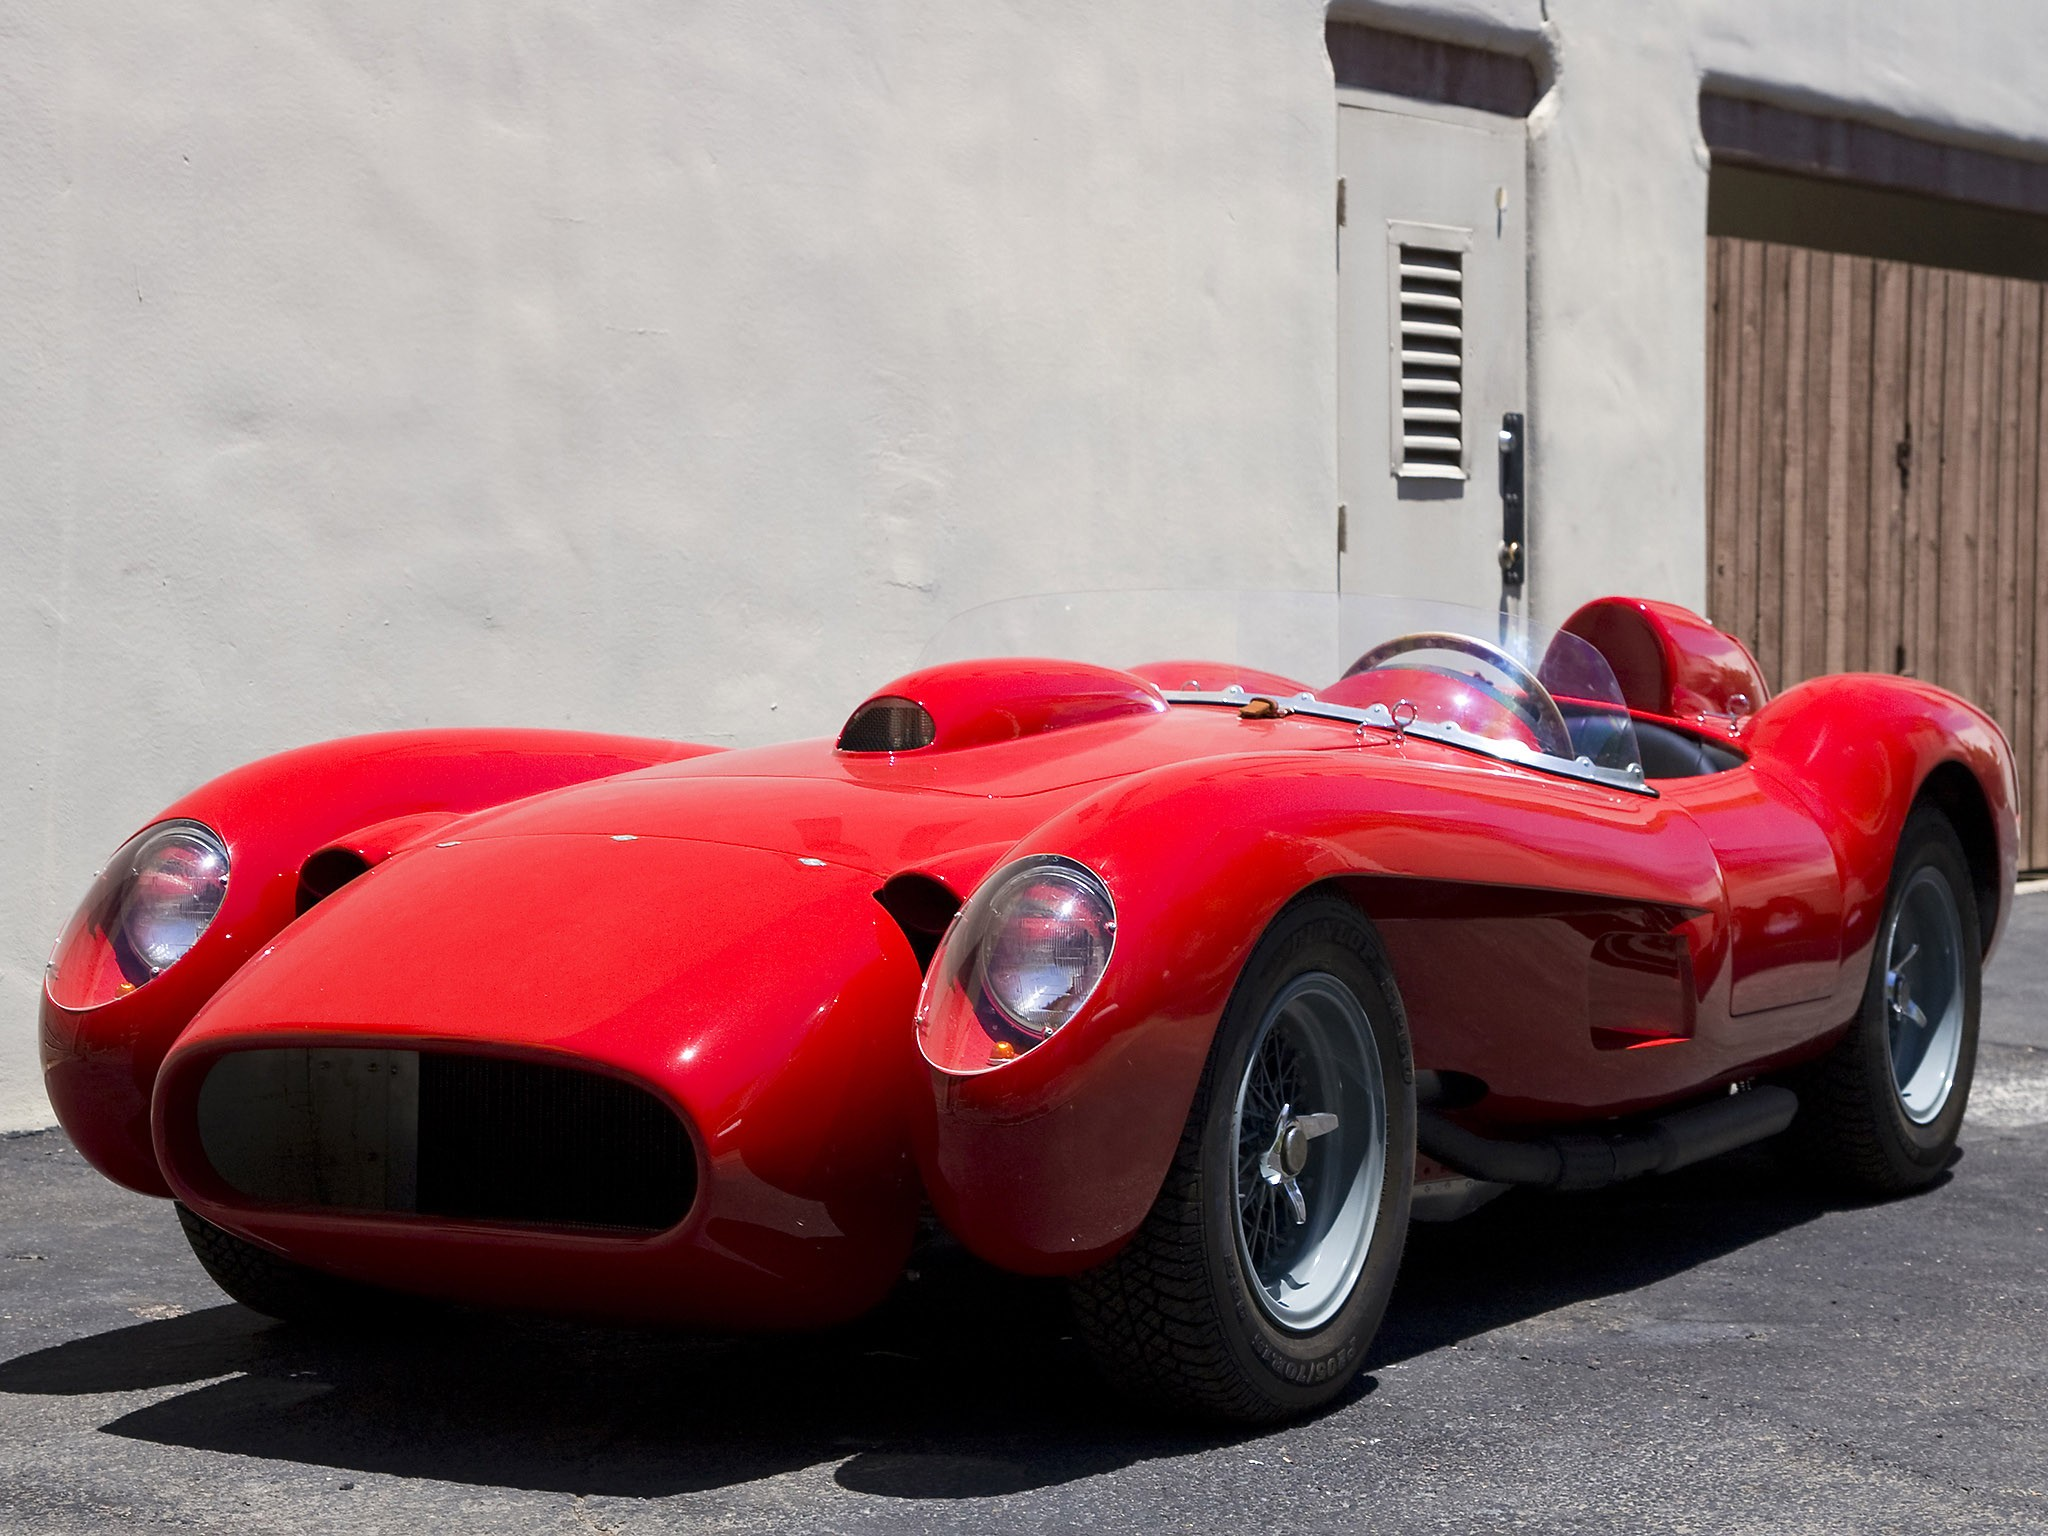 Ferrari 250 Testa Rossa Recreation